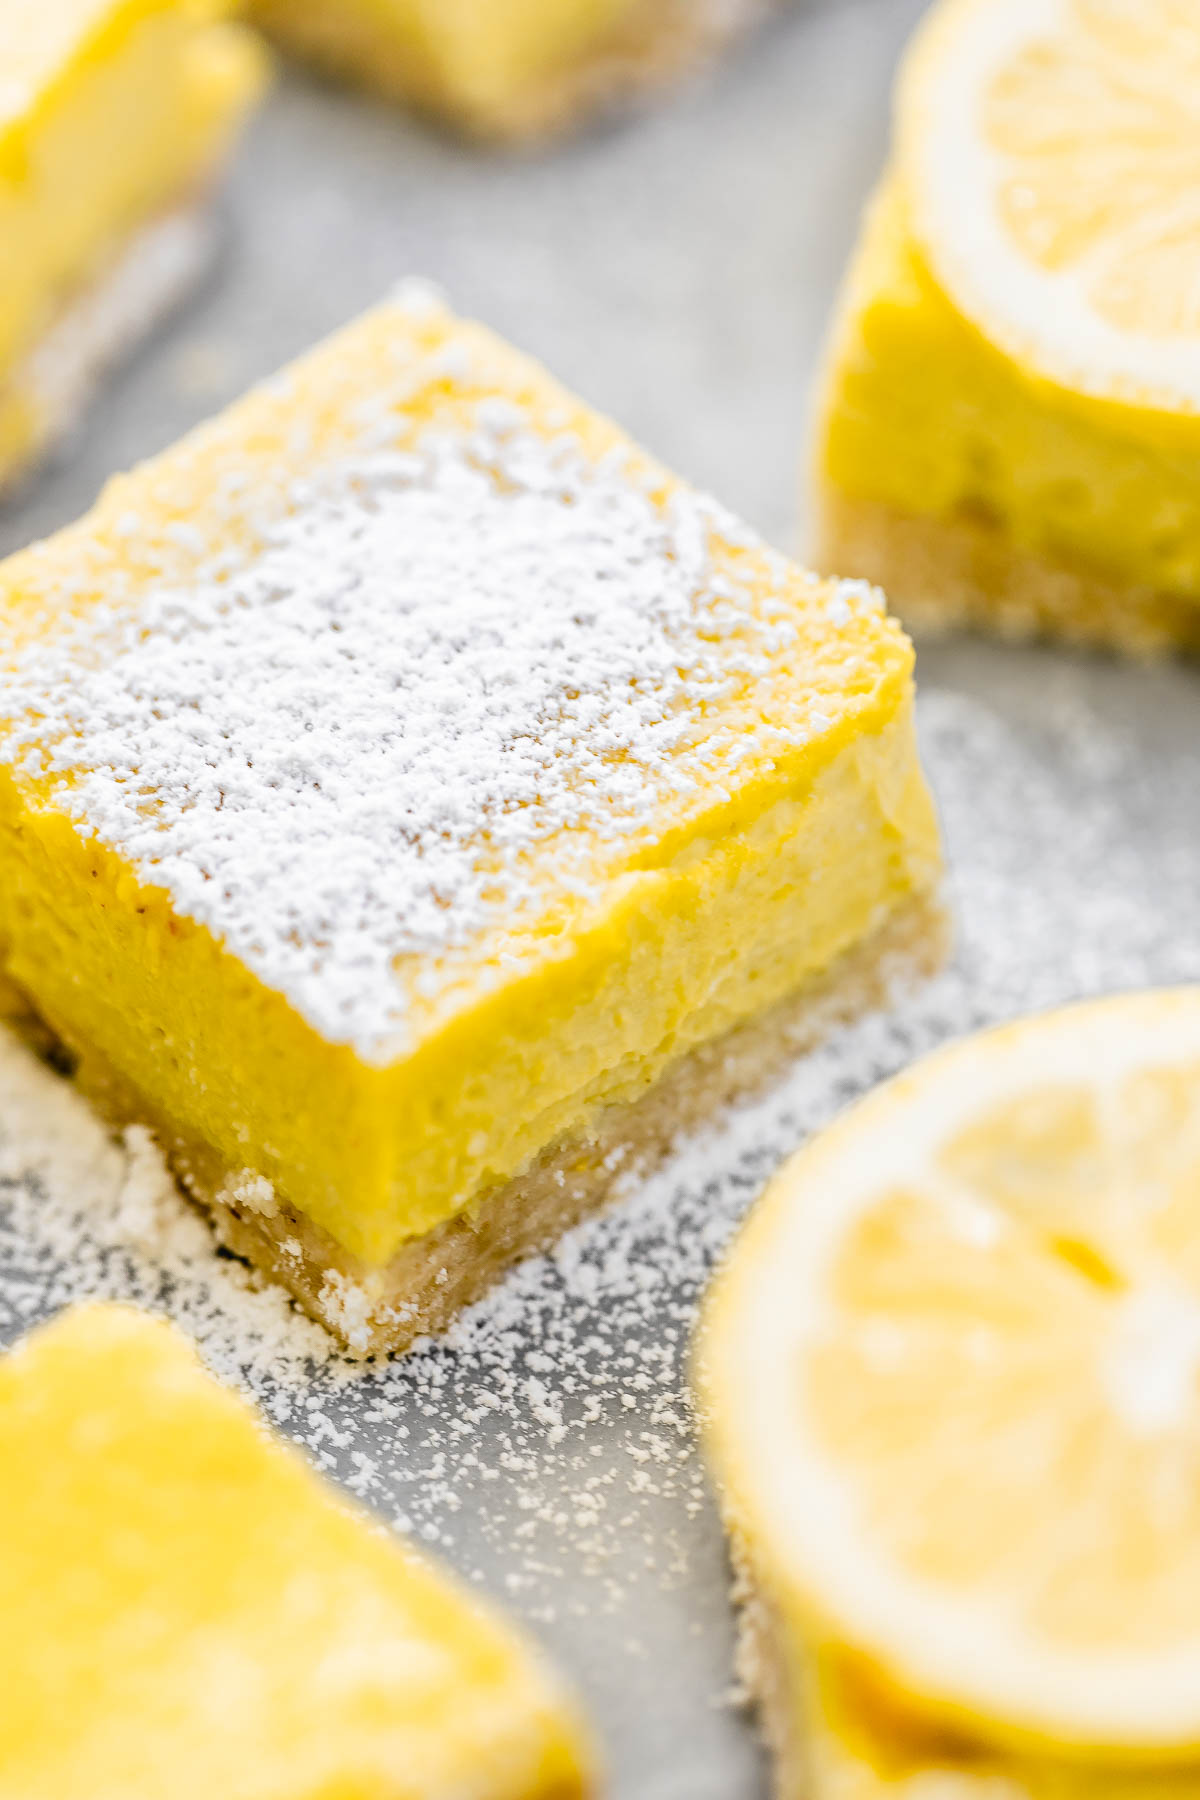 Up close image of the vegan lemon bars to show texture of the filling.